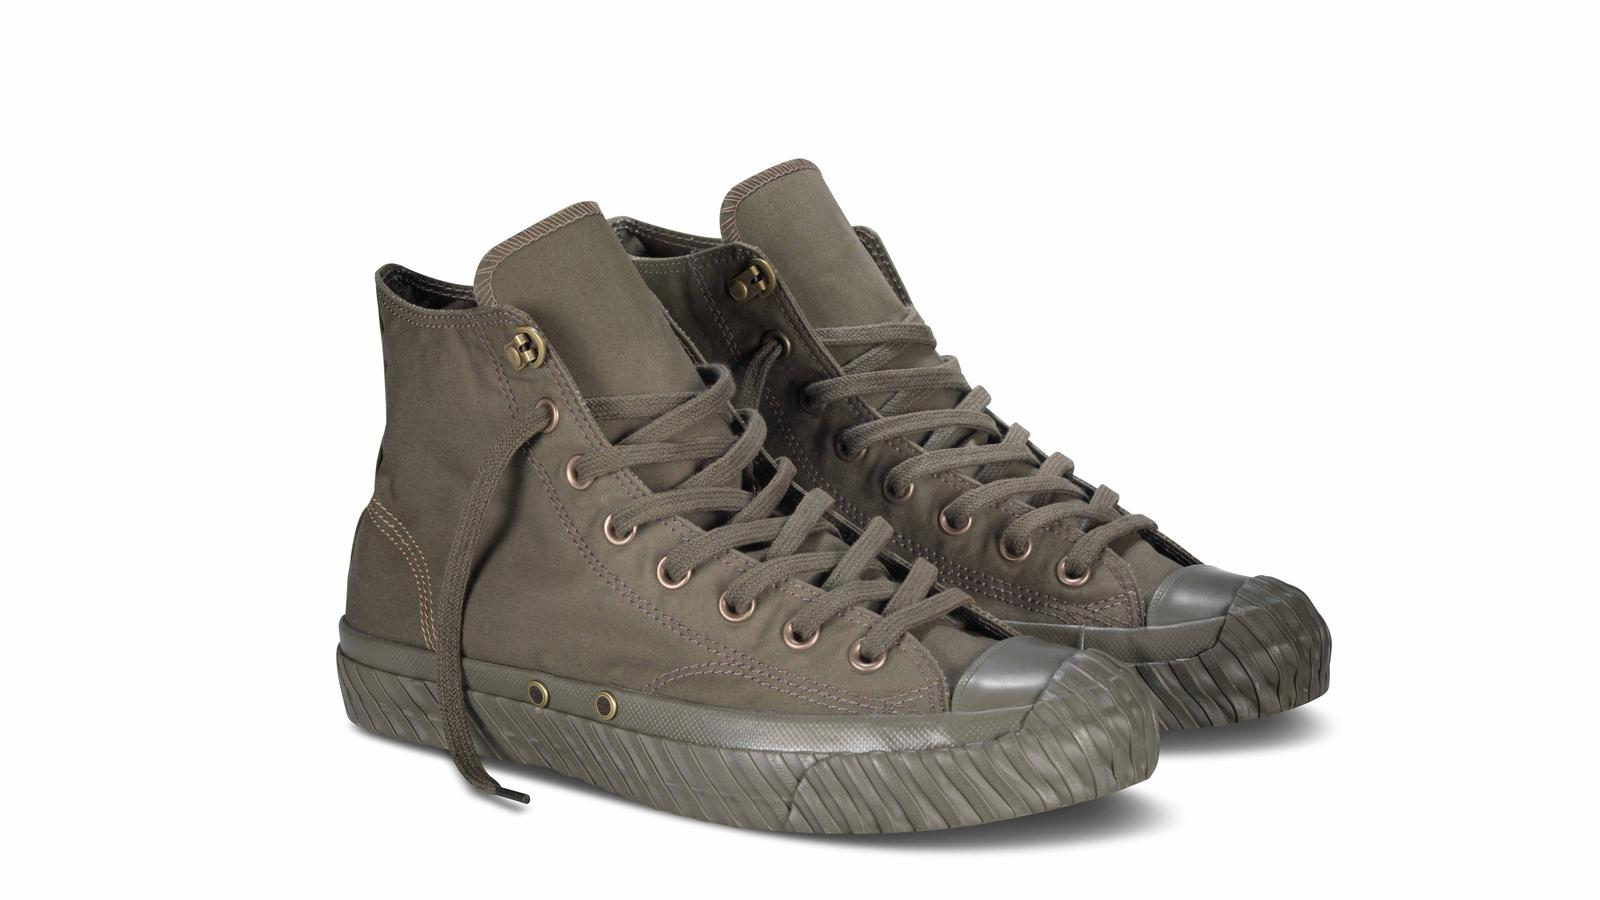 Nigel Cabourn For Converse Bosey Boot. Pair 2  Original